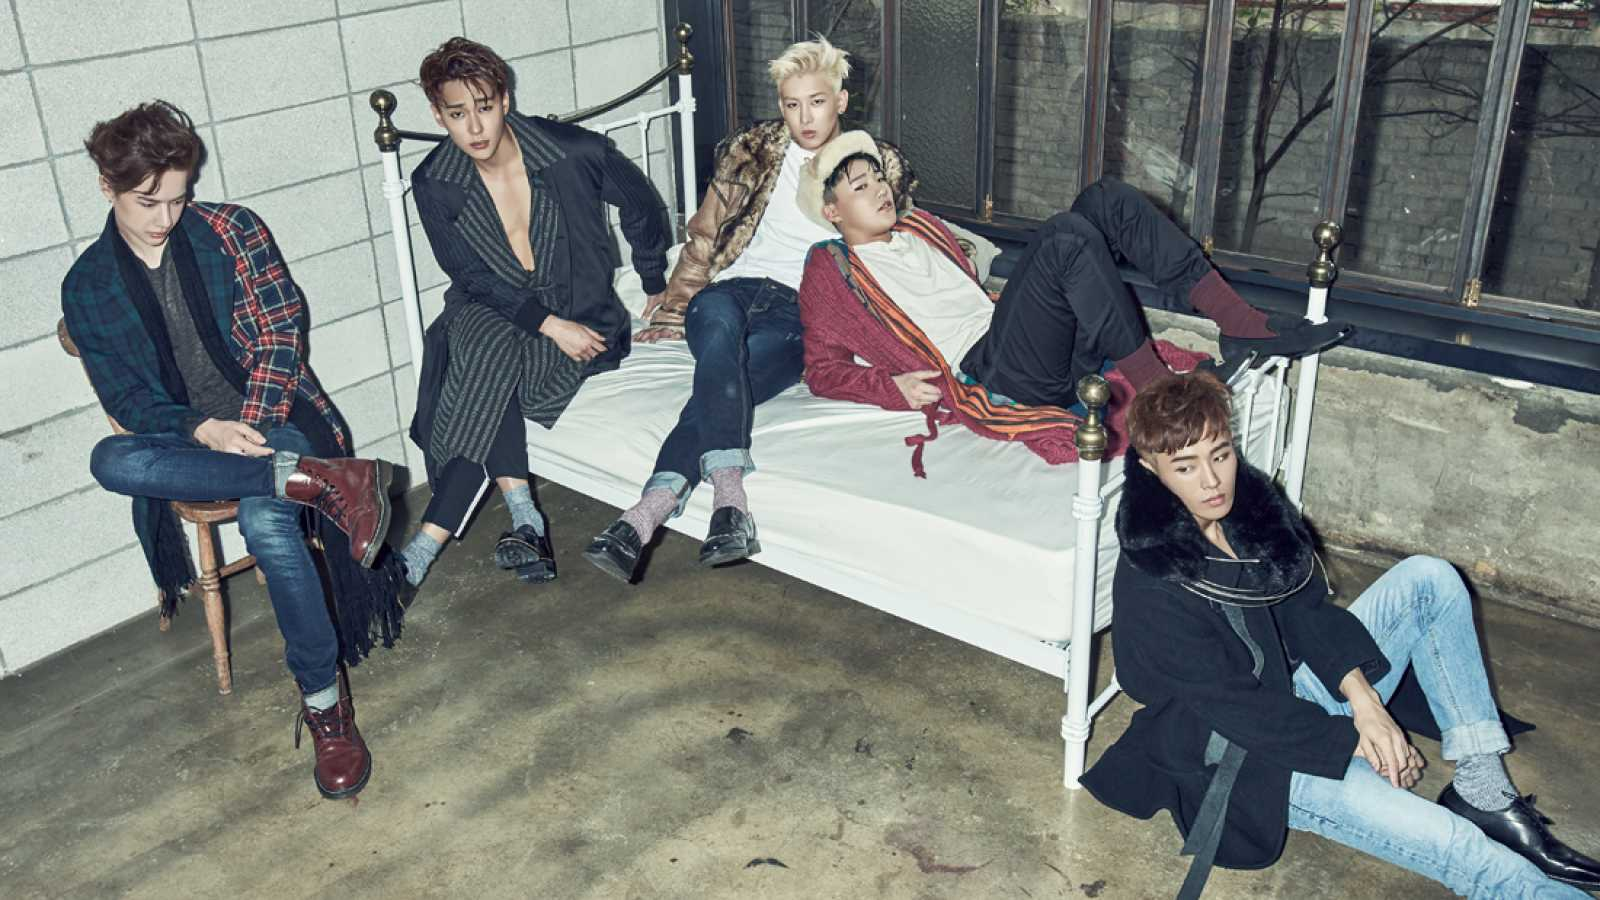 UNIQ ©  Starship Entertainment. All rights reserved